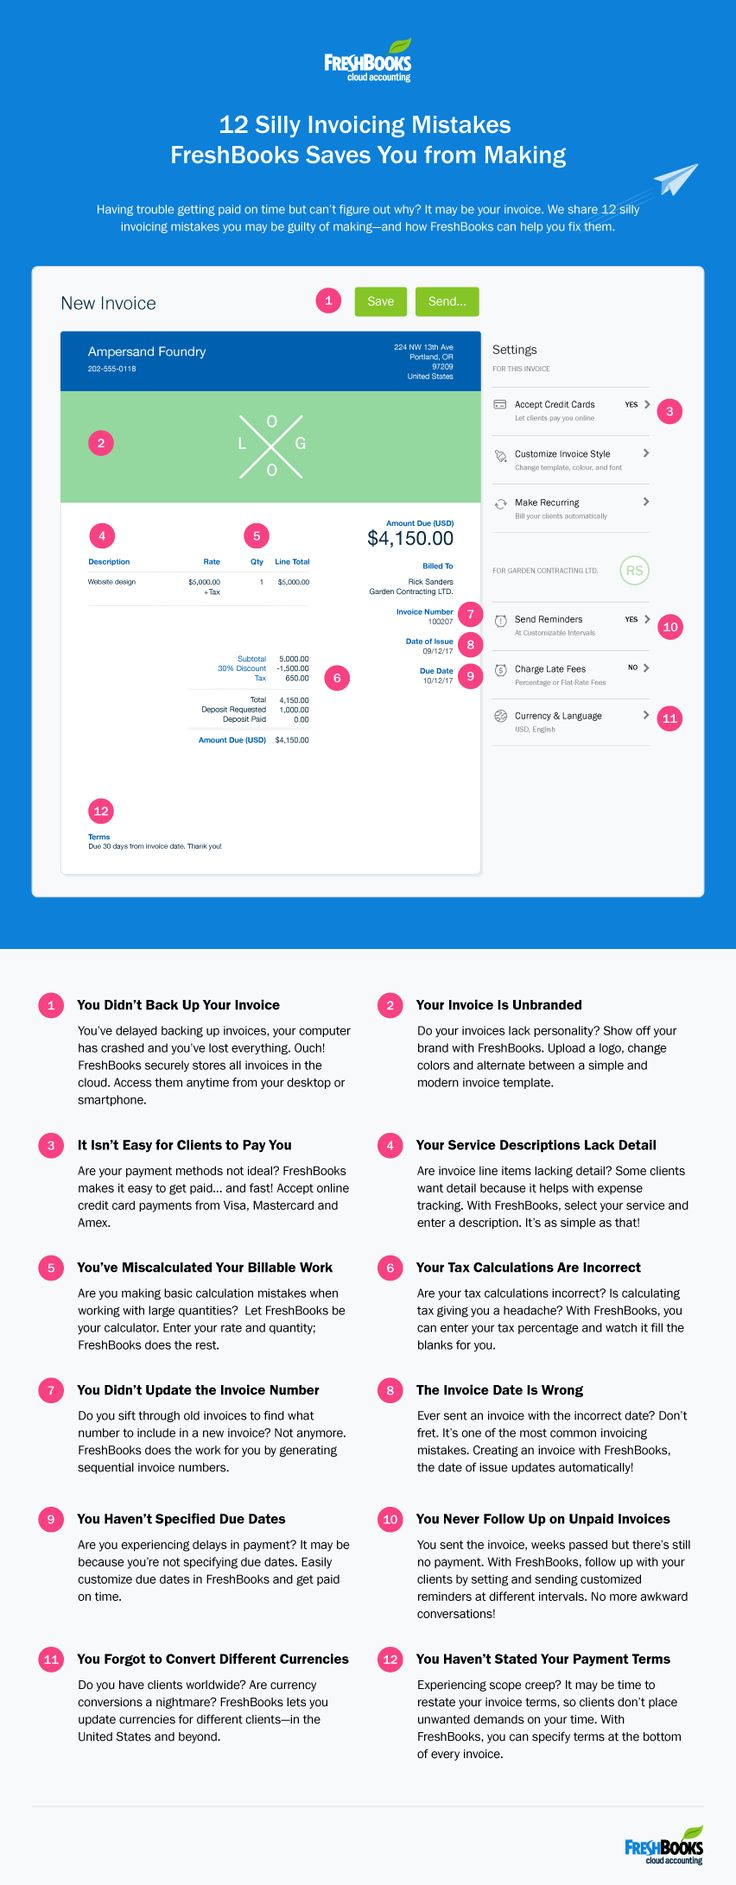 12 Silly Invoicing Mistakes That a Cloud Accounting Solution Will Save You From Making [Infographic]